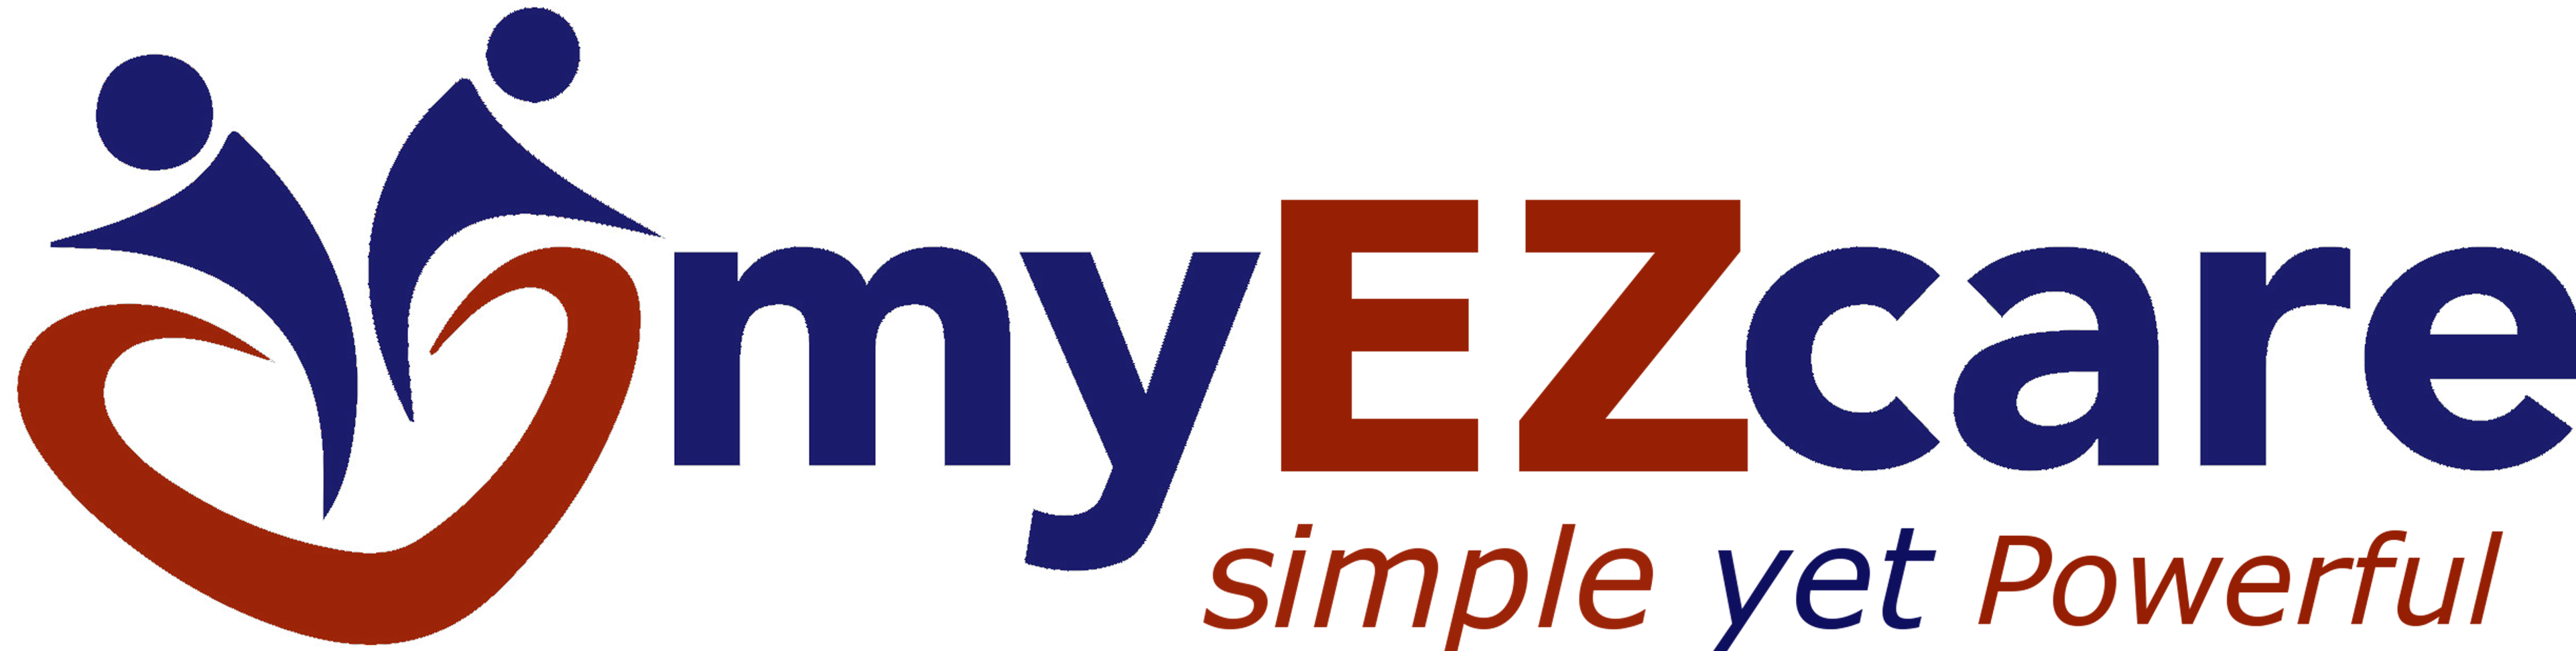 MyEzcare Support